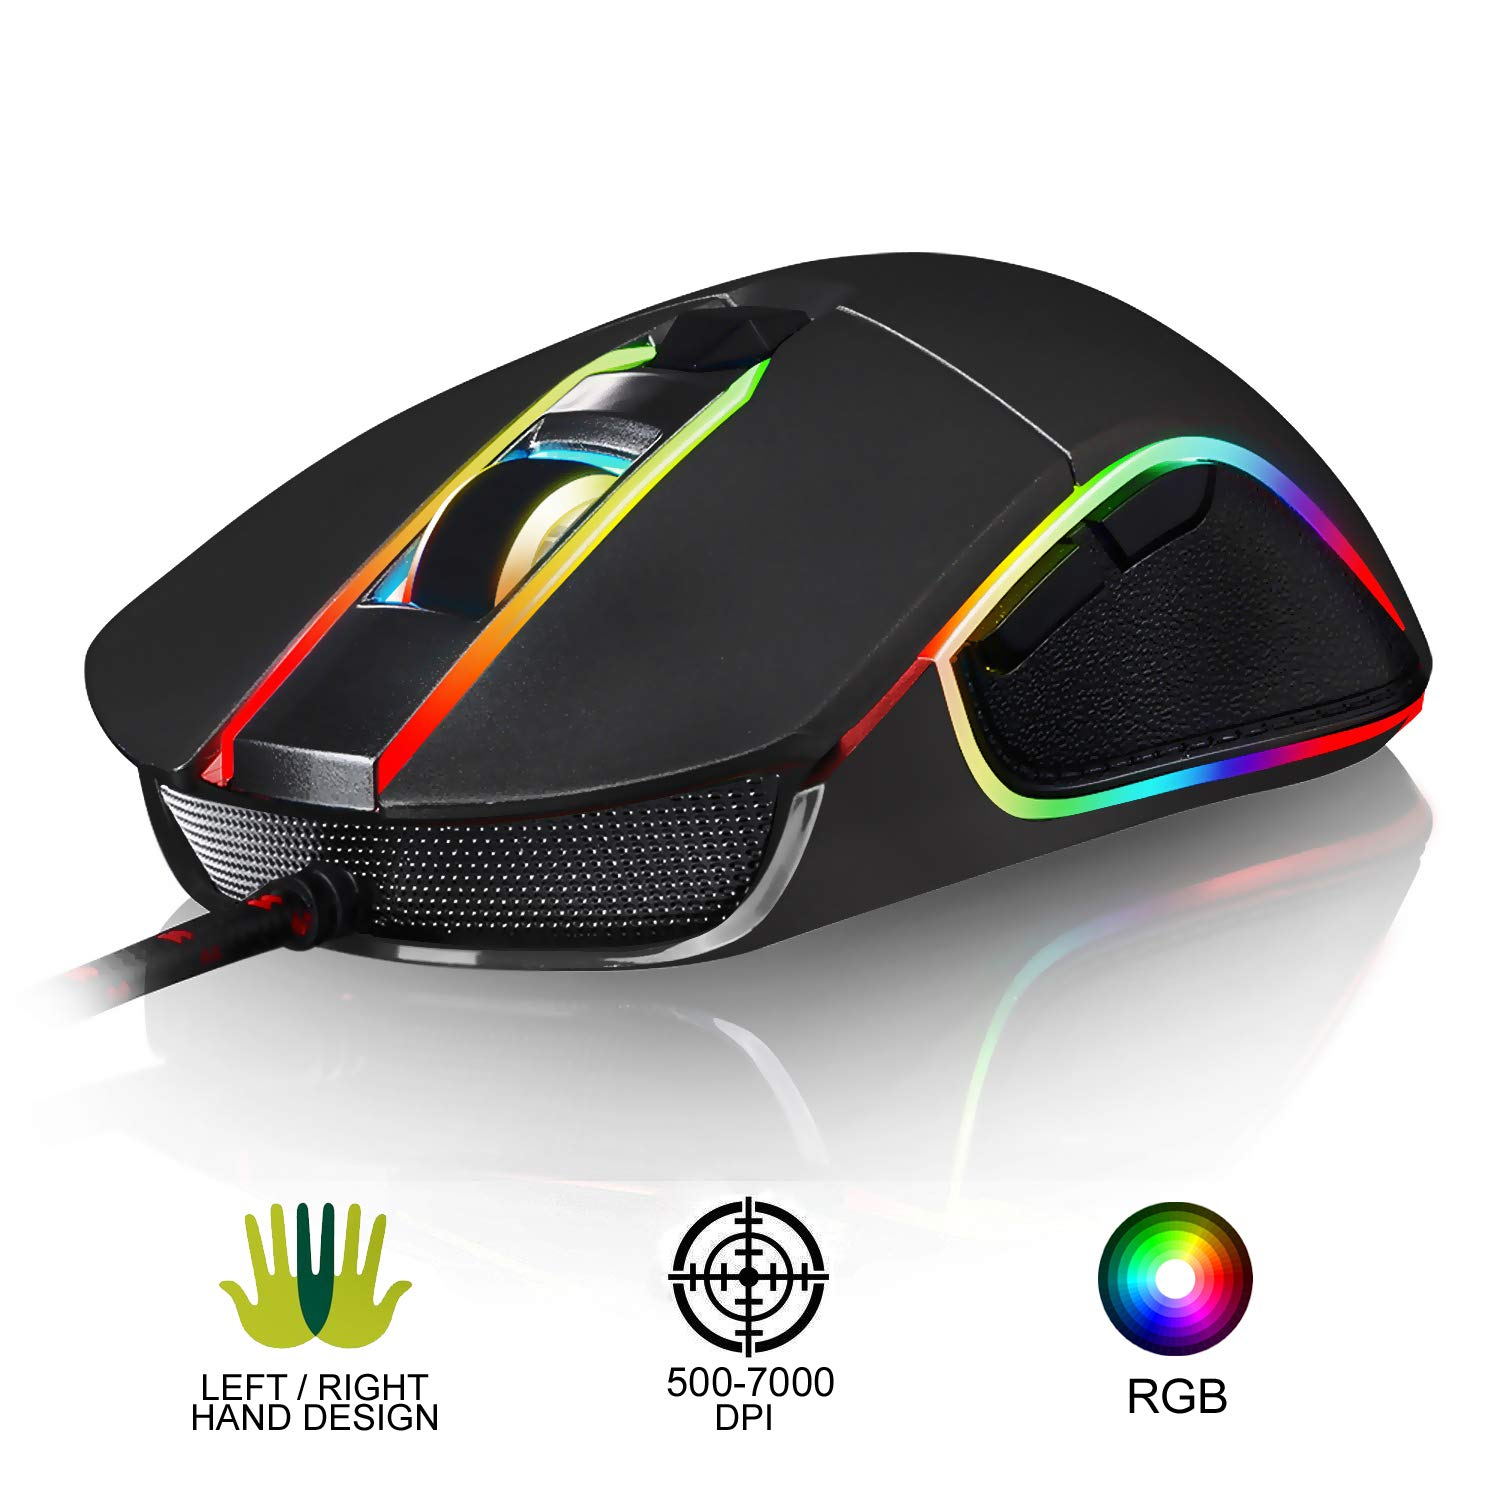 Mouse Gamer : KLIM AIM Con cable Ergonomico Gamer USB